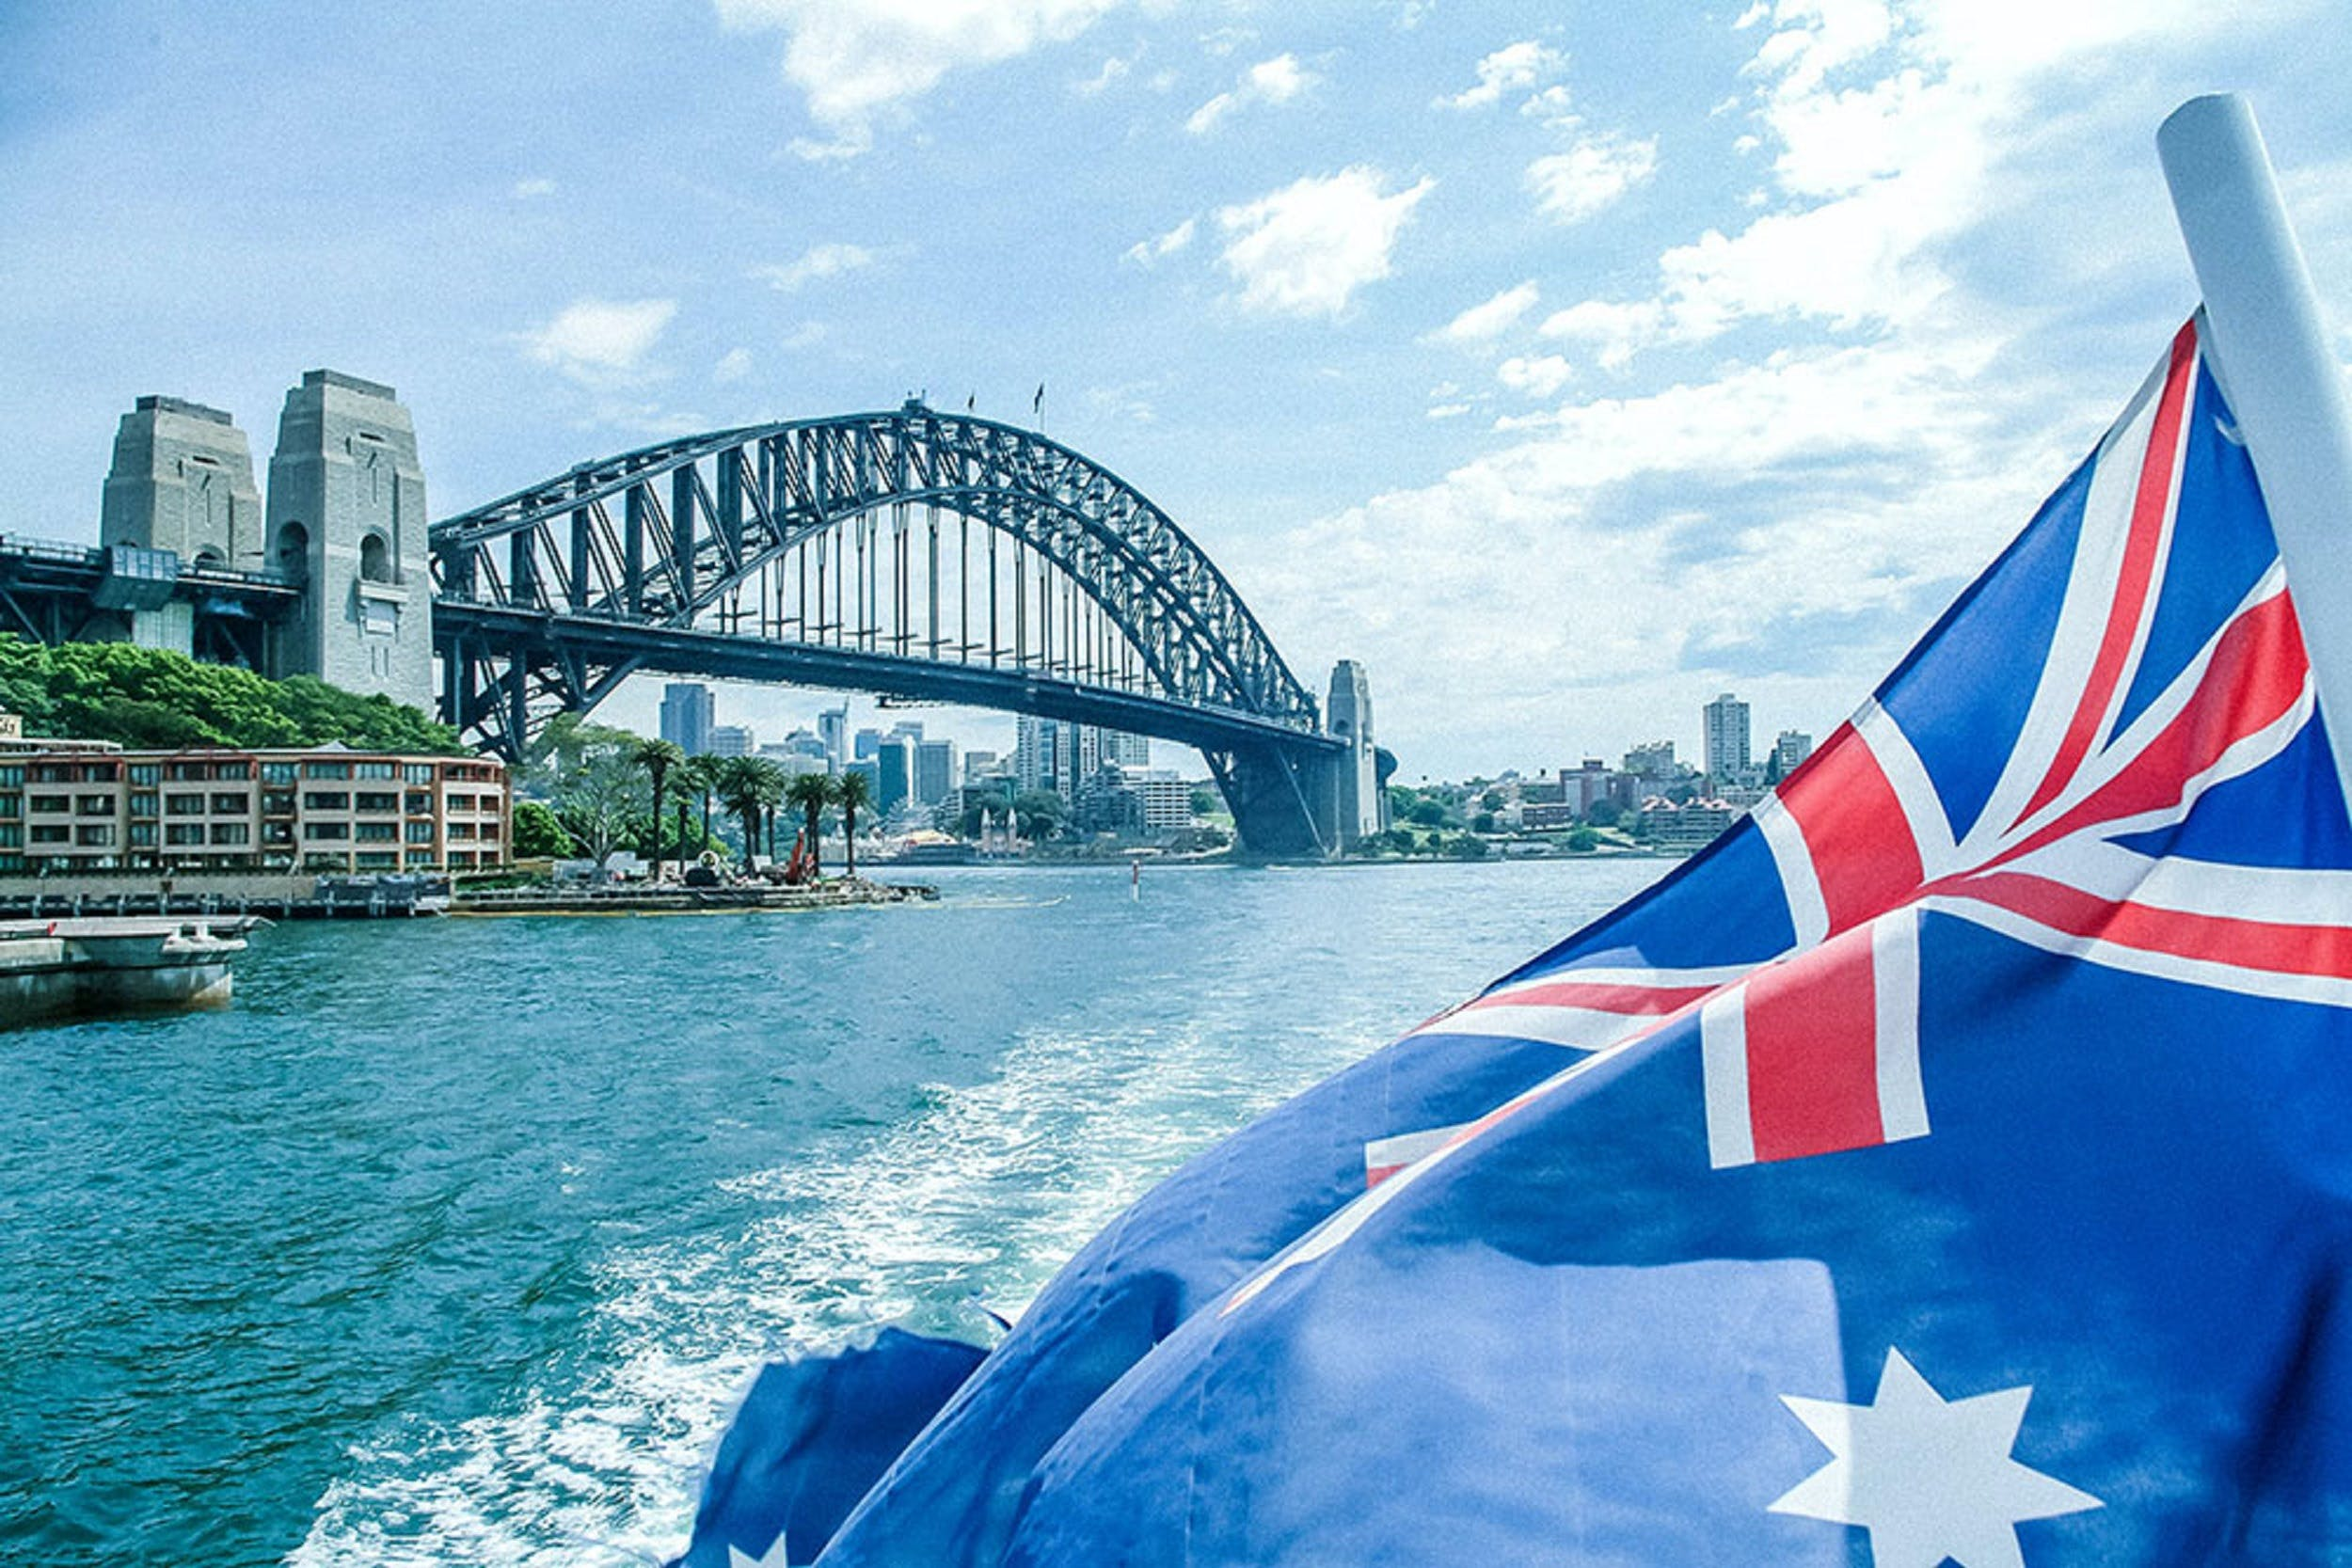 Australia Day Lunch and Dinner Cruises On Sydney Harbour with Sydney Showboats - VIC Tourism